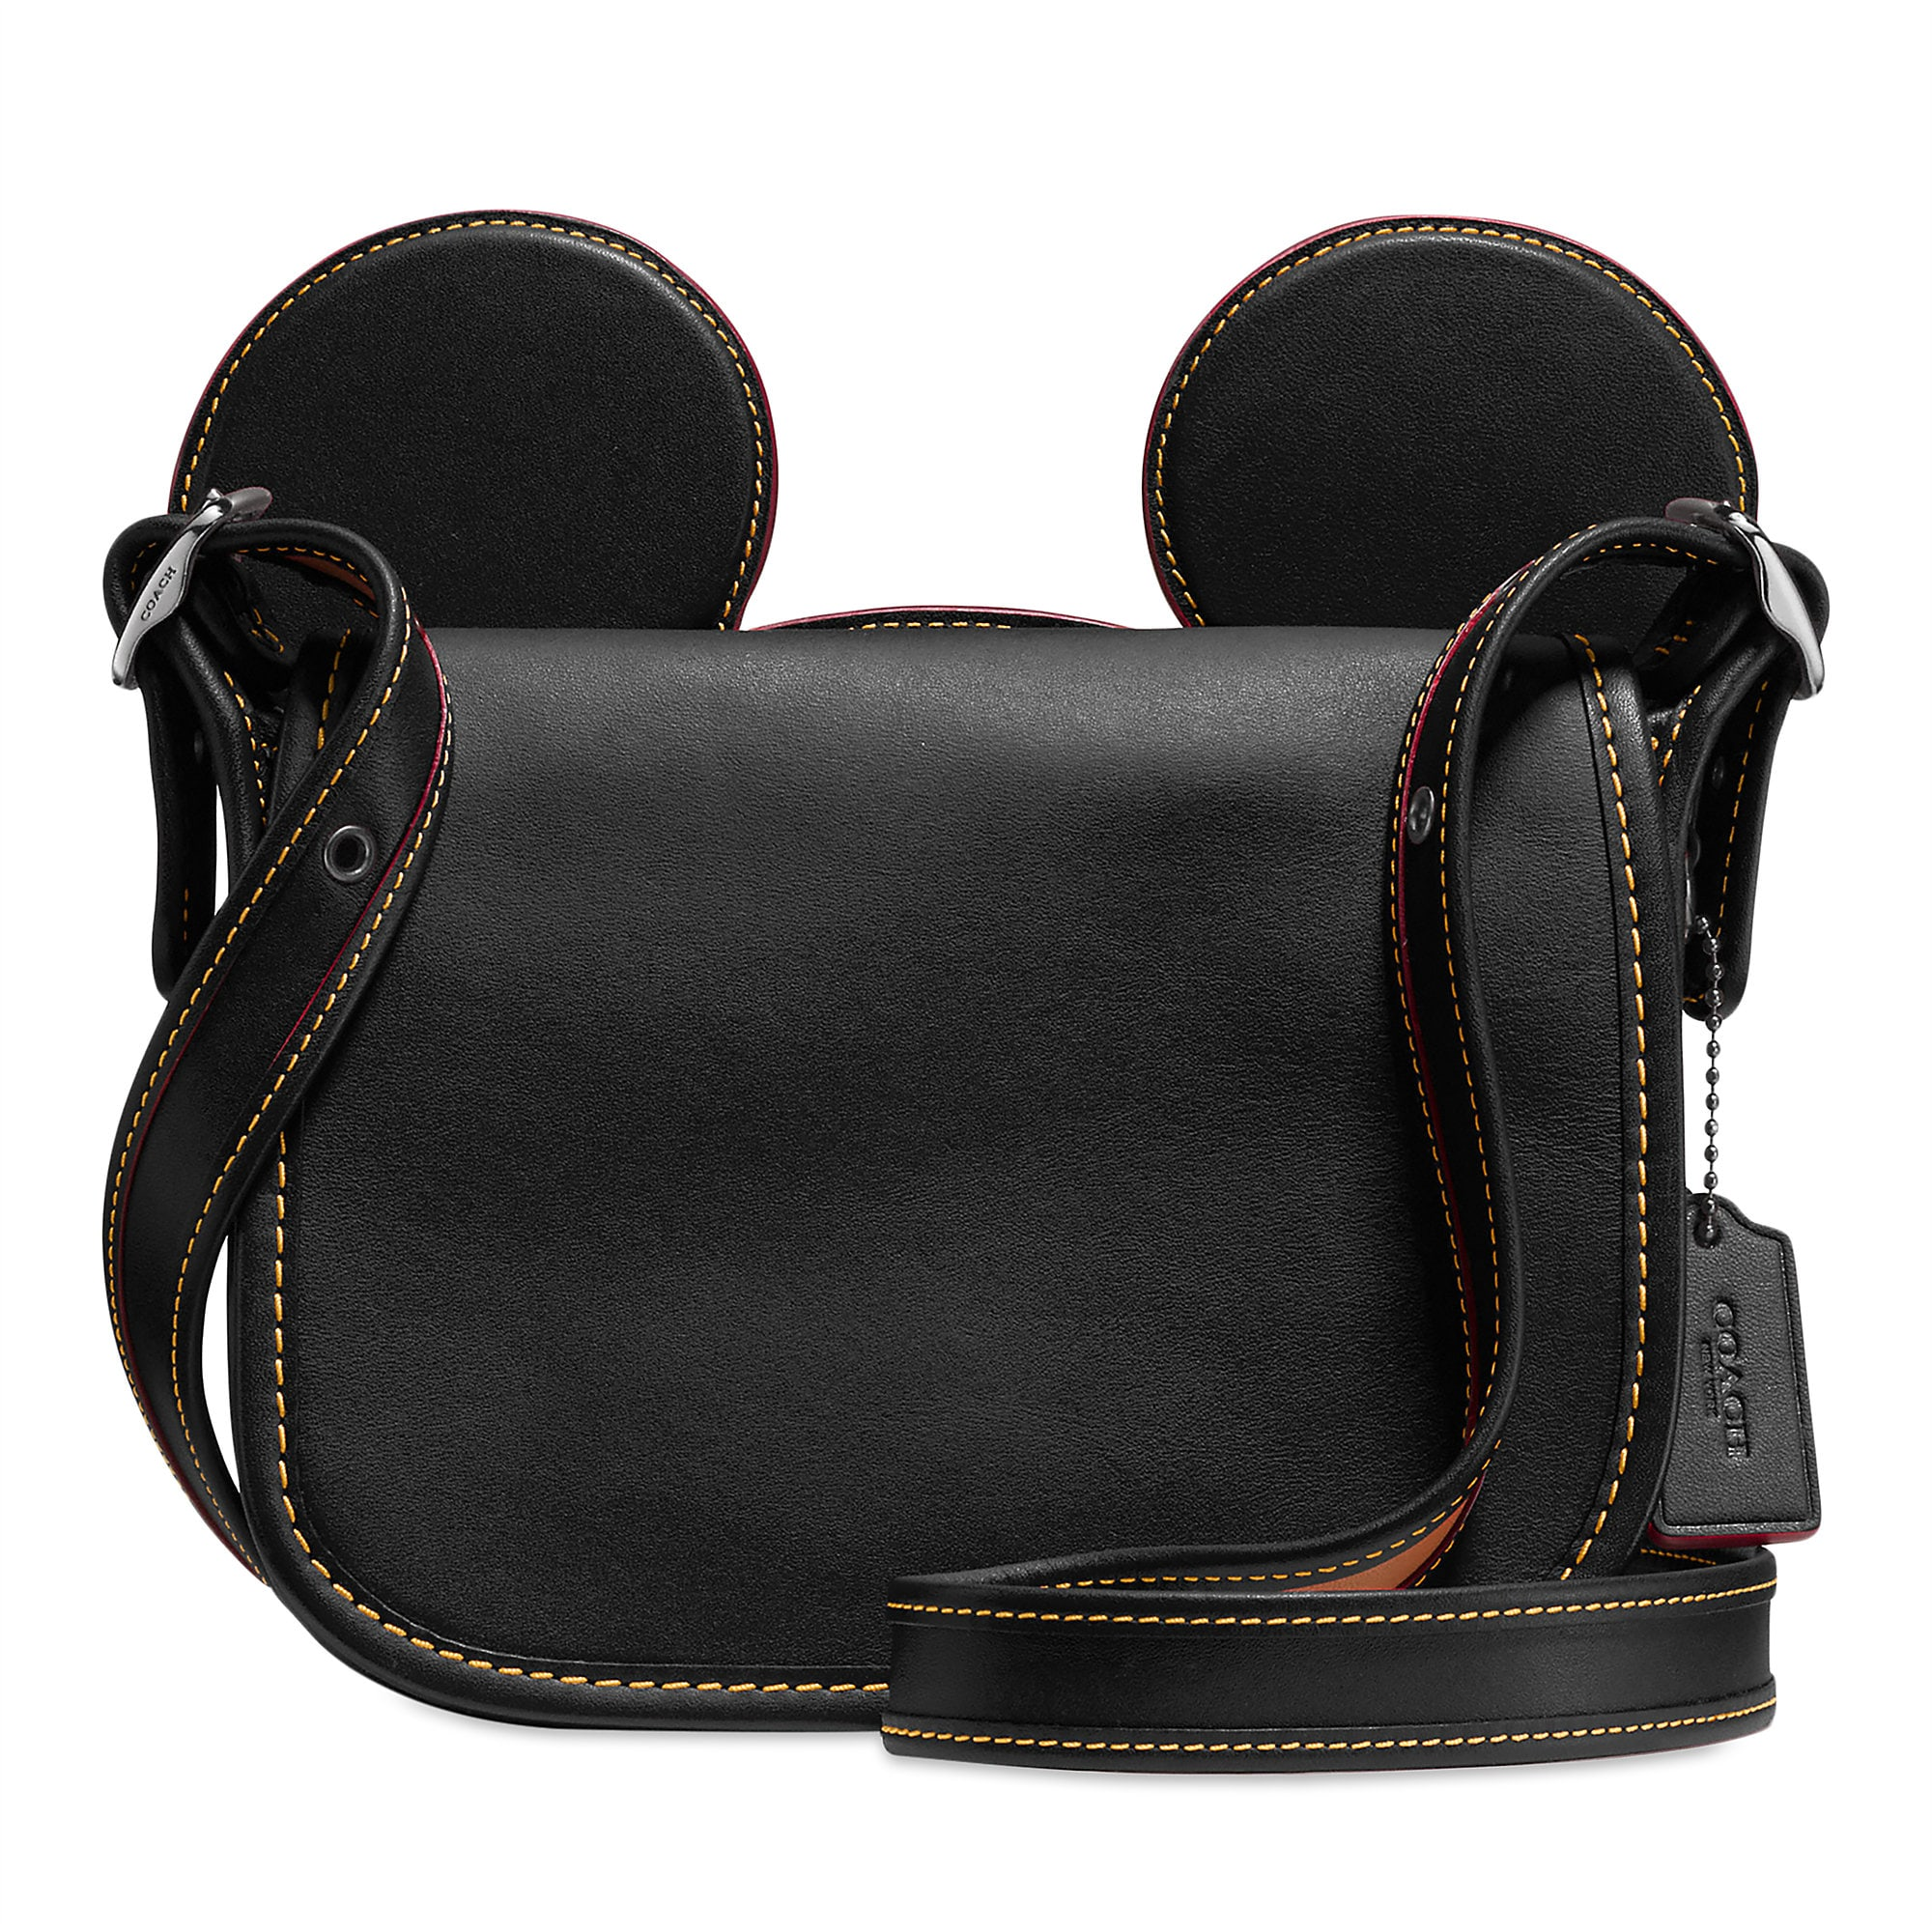 8150cc72ac07 Mickey Mouse Ears Patricia Leather Saddle Bag by COACH - Black ...